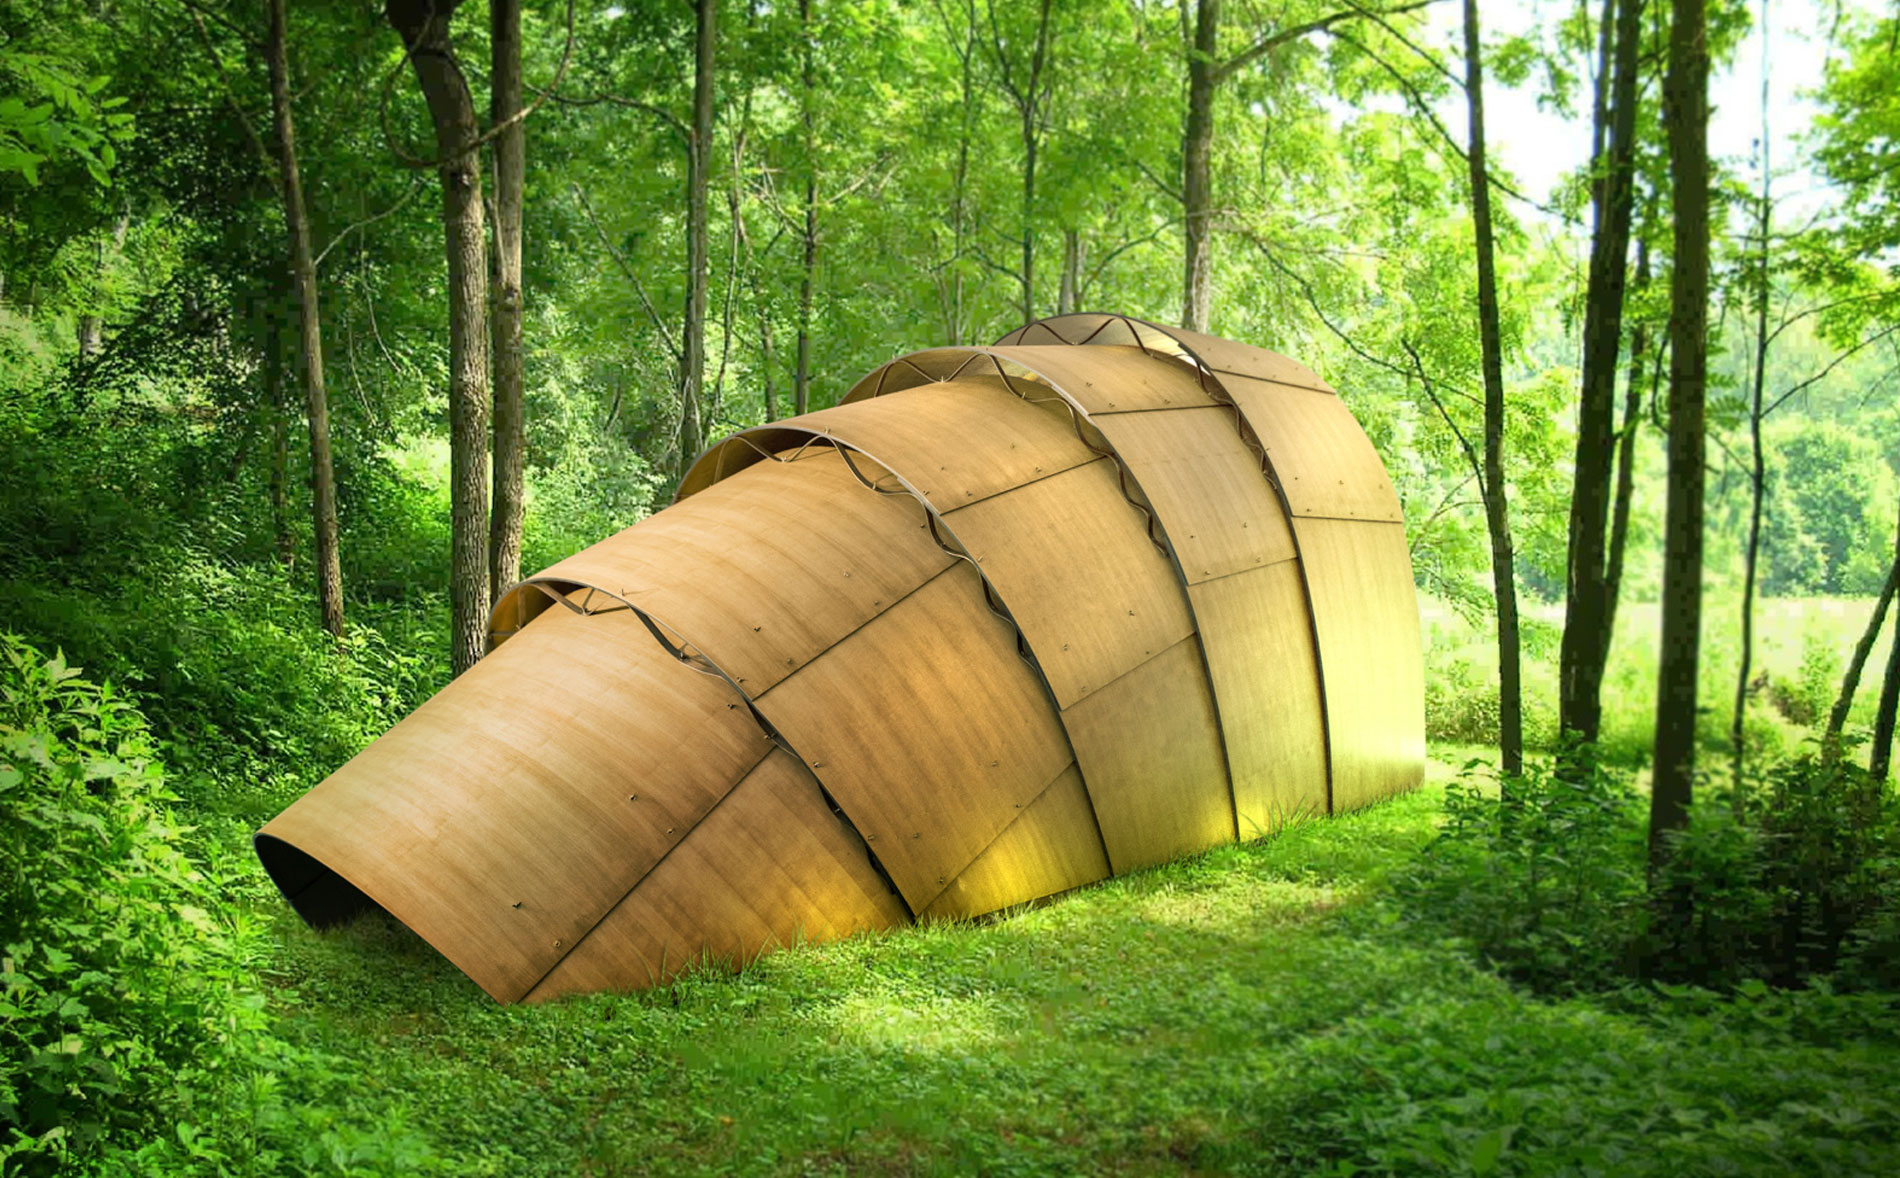 The  Armadillo Tea Pavillion is an innovative structure that serves as a shelter or place for reflection. Place this versatile, modular design indoors or out.